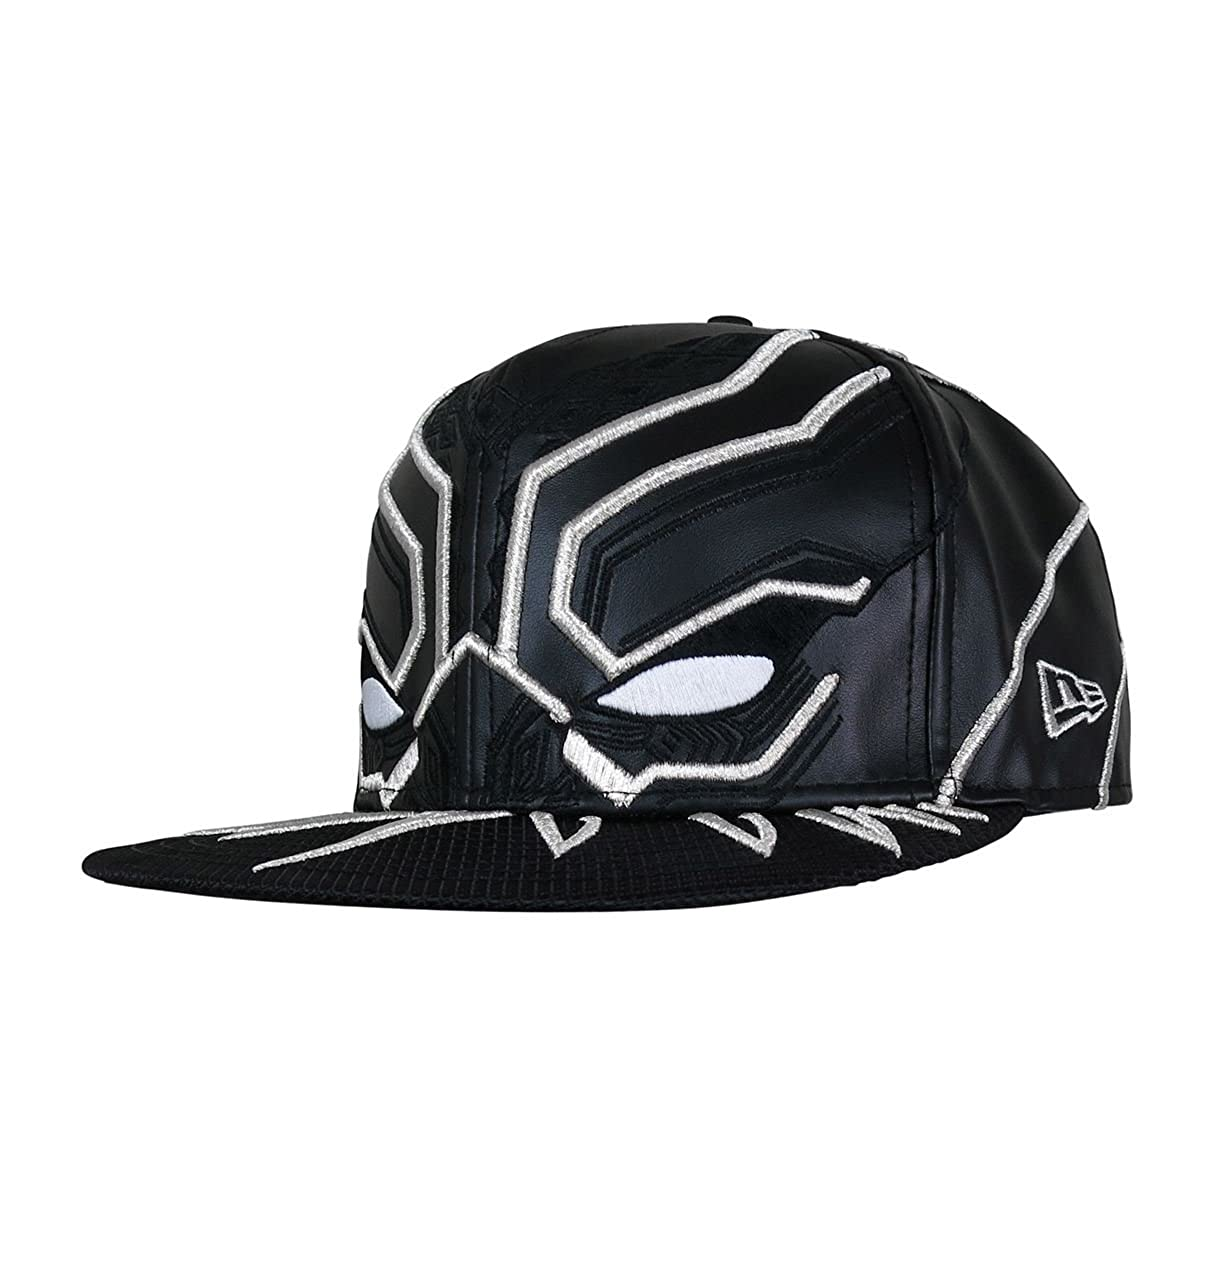 Black Panther Armor New Era 5950 Hat 7 1 8 At Amazon Mens Clothing Store